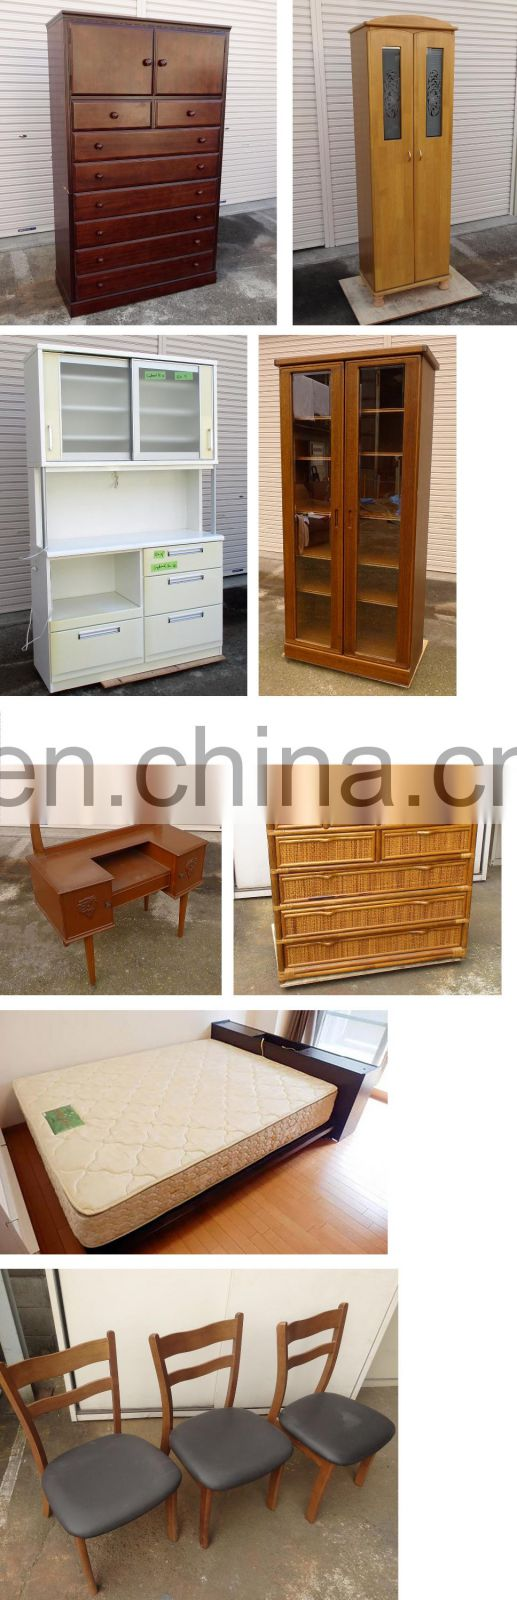 Vintage Used Japanese Classic Furniture/ the Cabinets, the Chests, etc. by Container